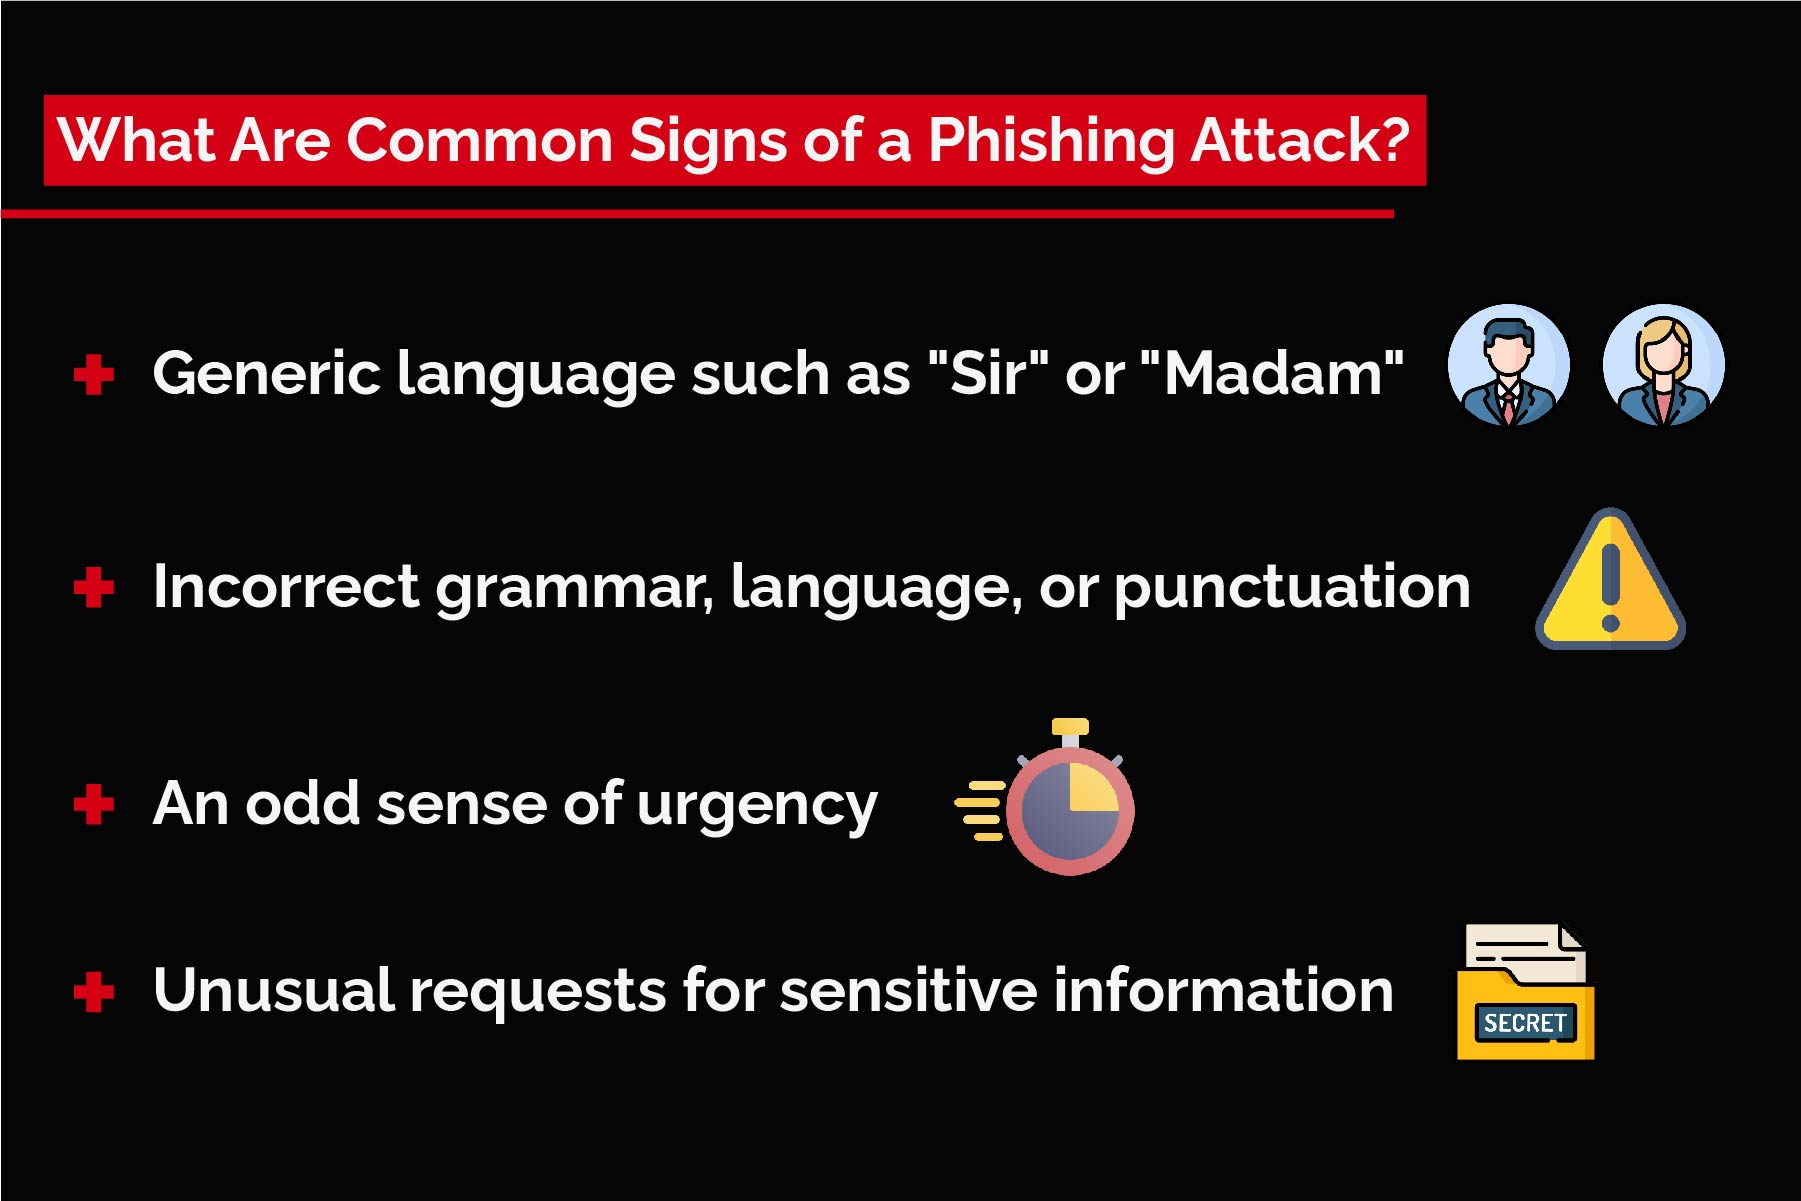 common signs of a phishing attack